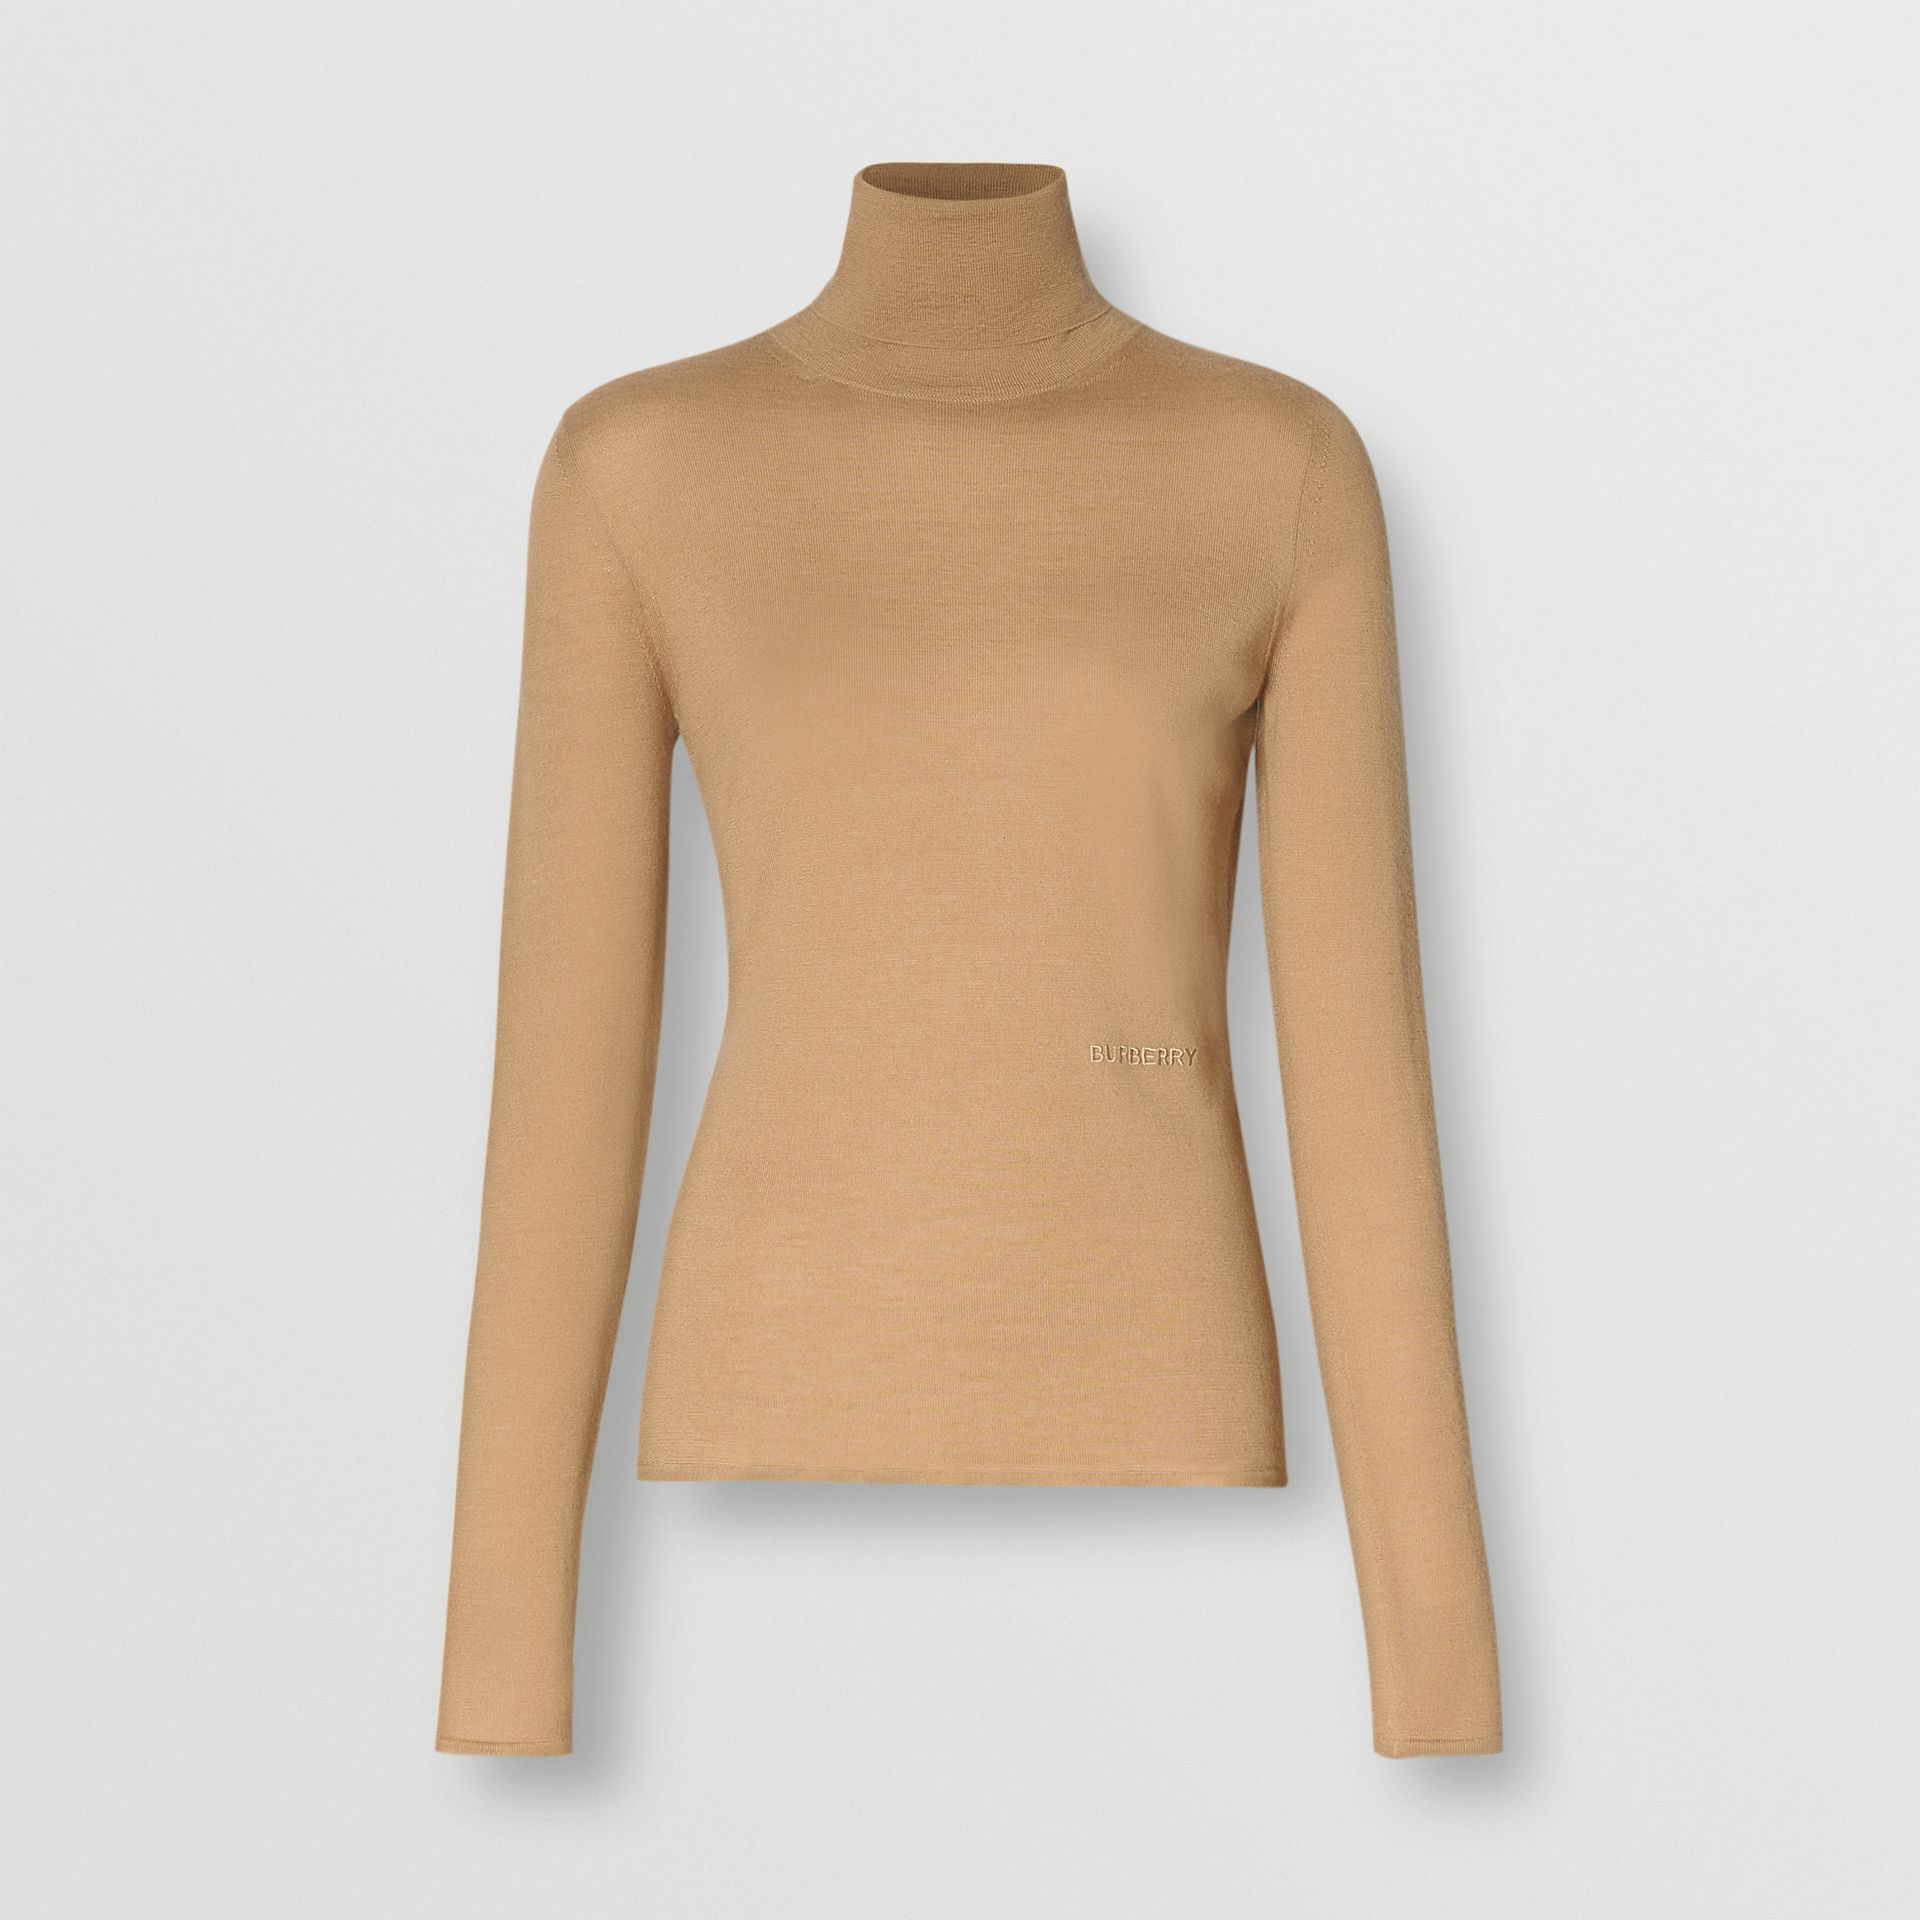 Embroidered Logo Cashmere Silk Roll-neck Sweater in Archive Beige - Women | Burberry - gallery image 3